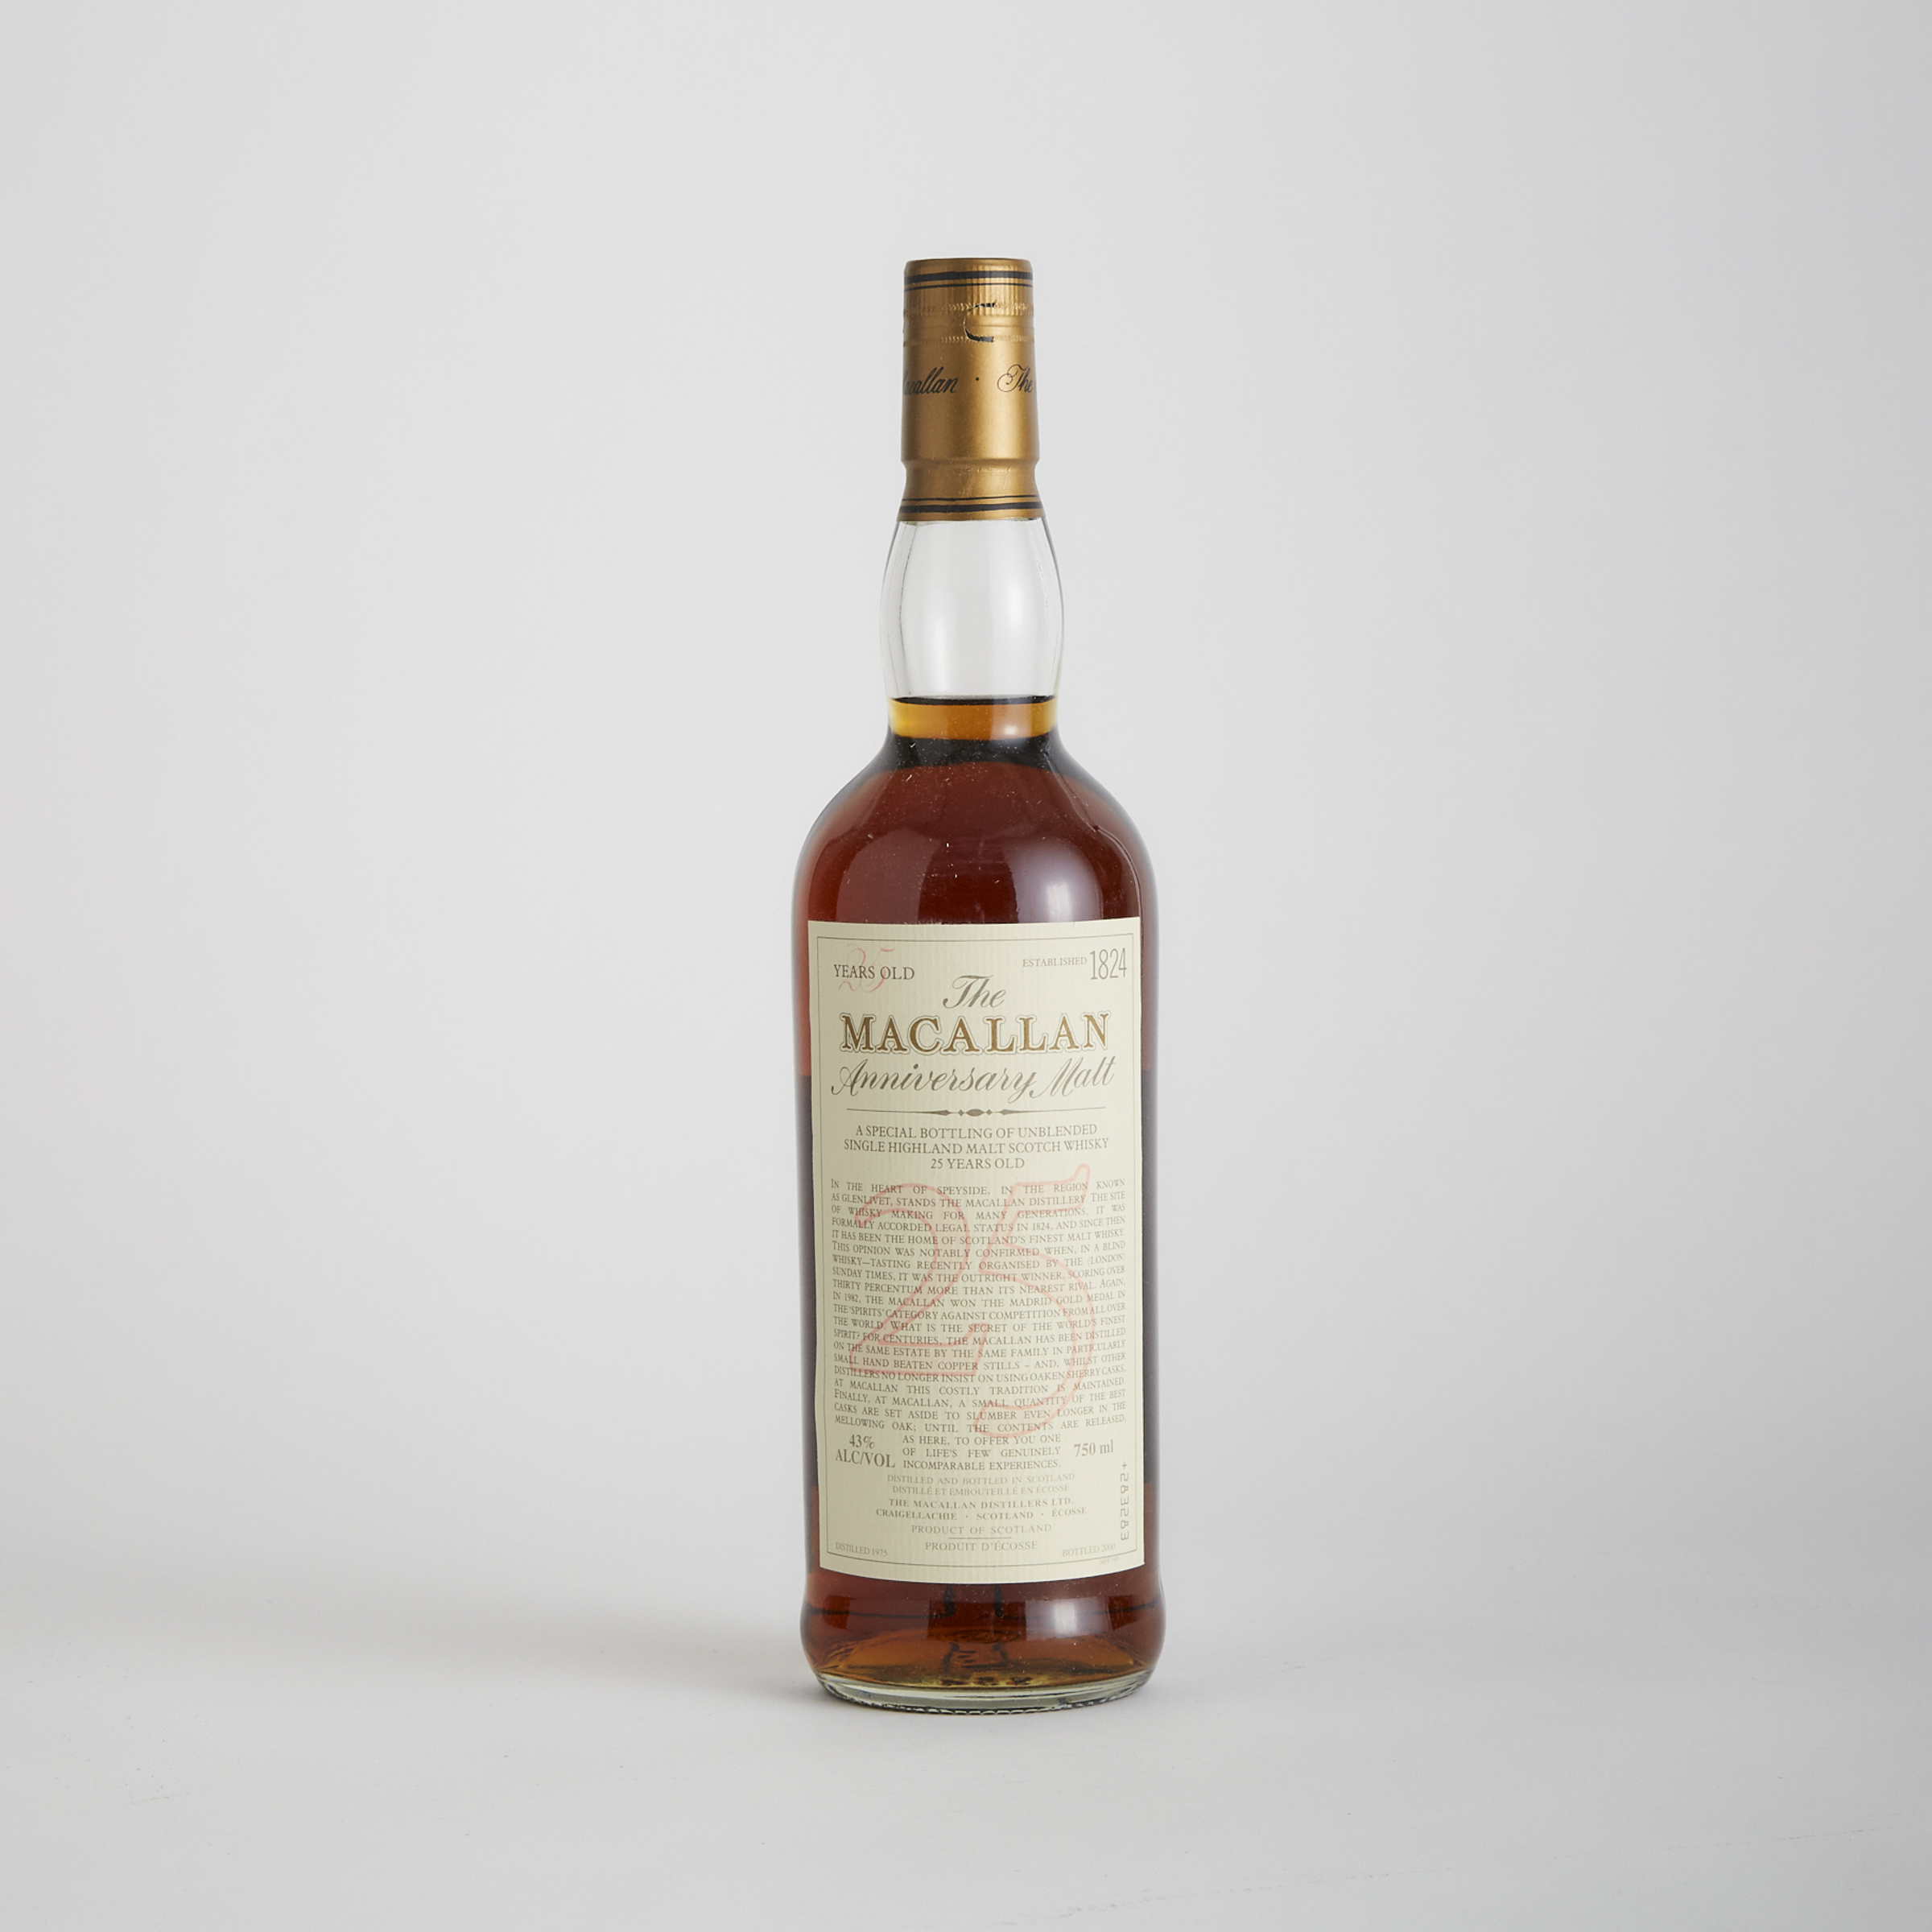 THE MACALLAN 25 YEAR ANNIVERSARY SINGLE HIGHLAND MALT SCOTCH WHISKY 25 YEARS (ONE 750 ML)